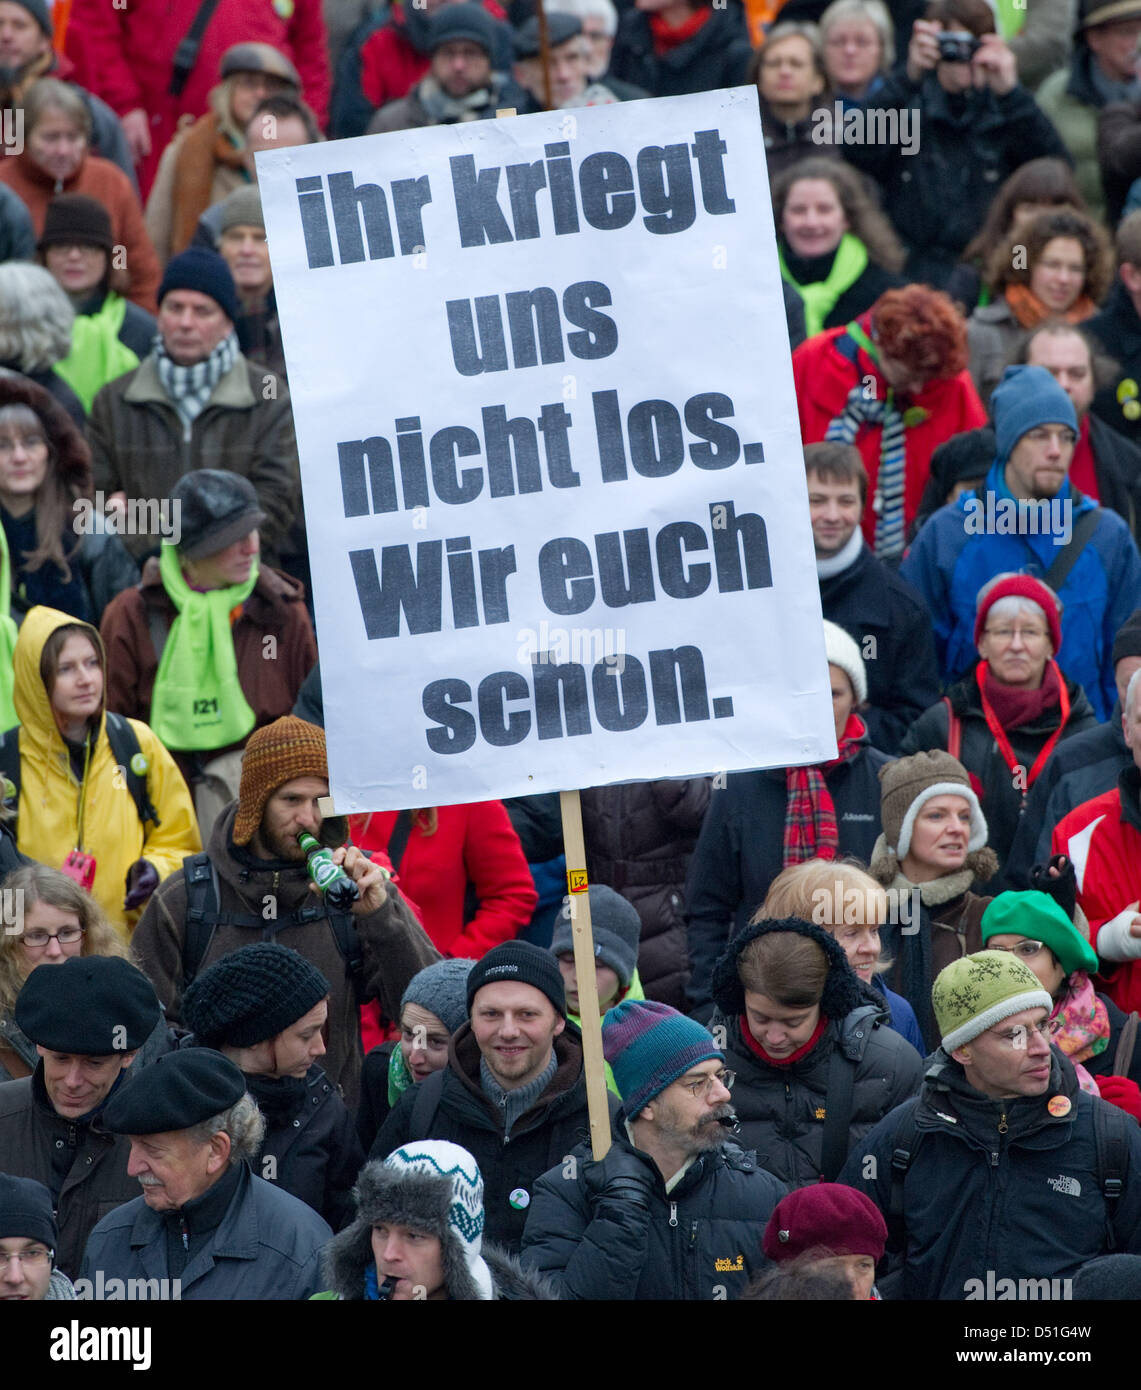 Several thousand people demonstrate with banners against the railway project 'Stuttgart 21' in Stuttgart, - Stock Image